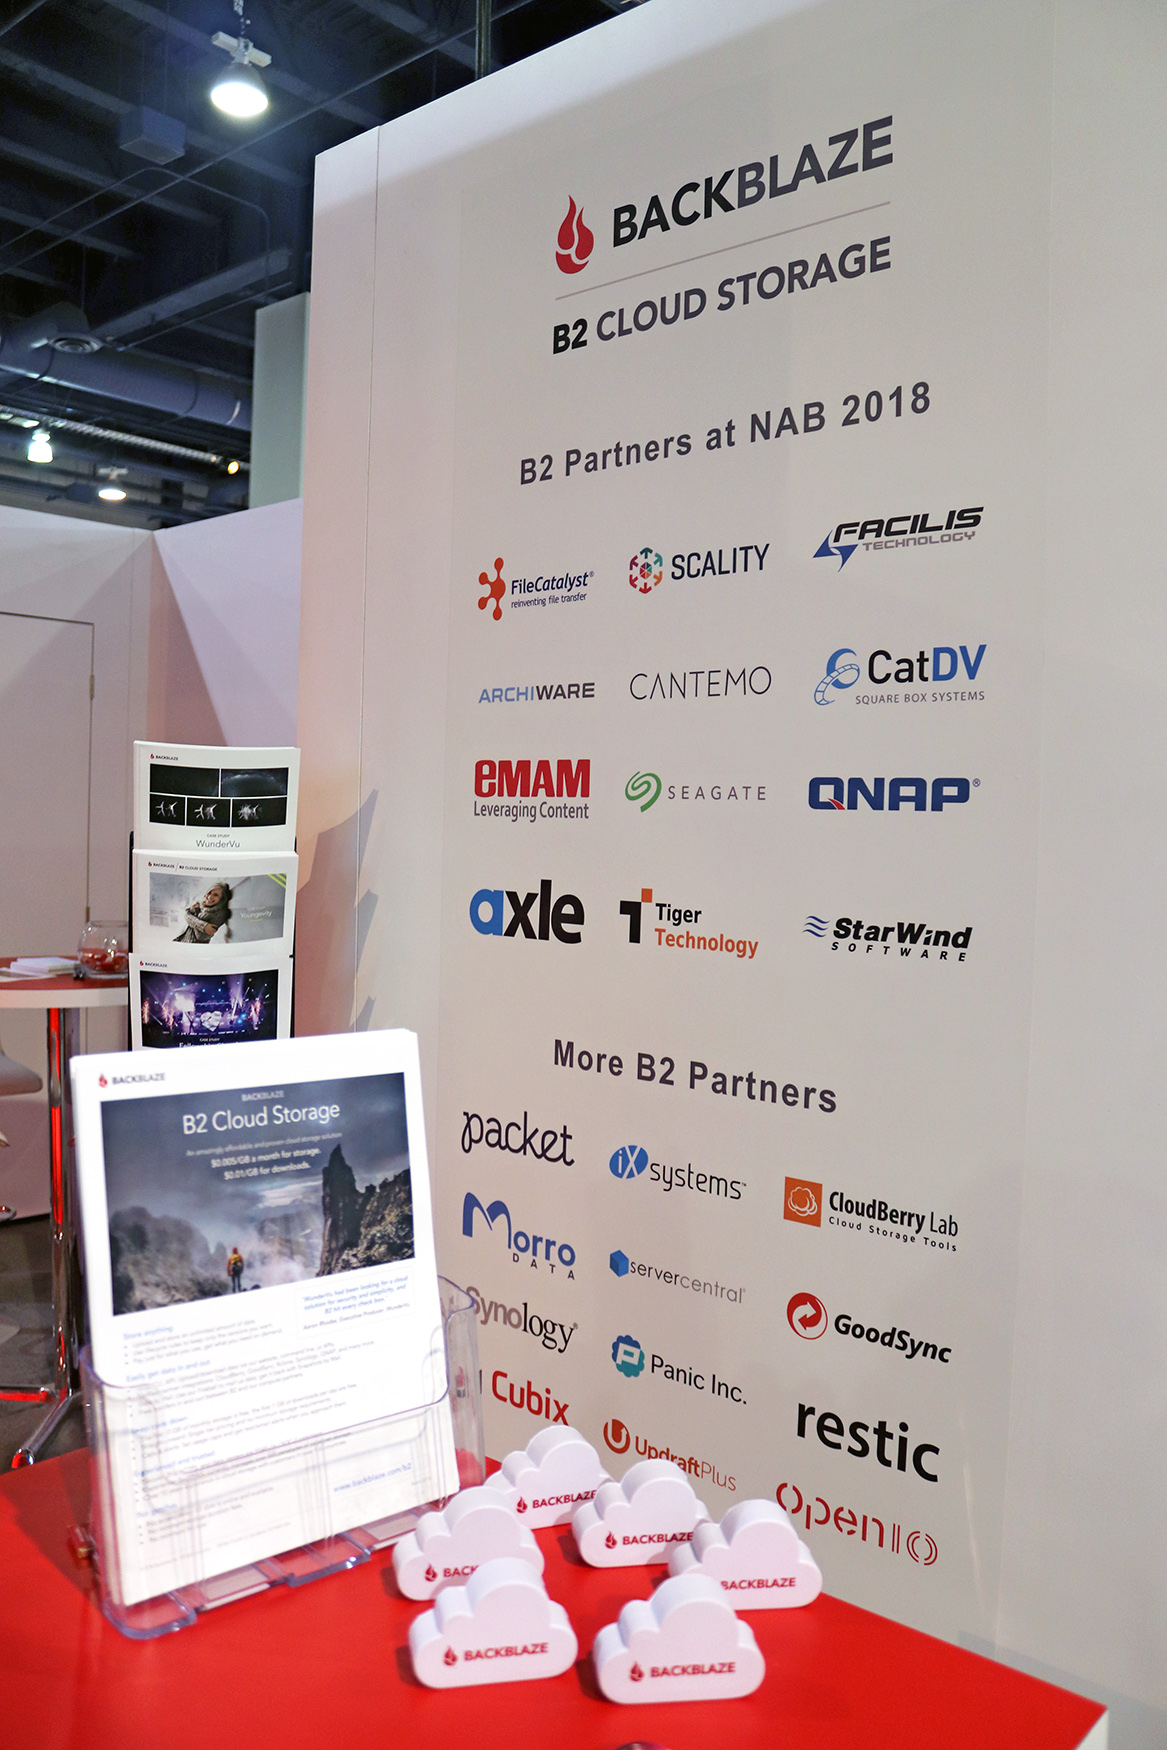 B2 Partners at NAB 2018